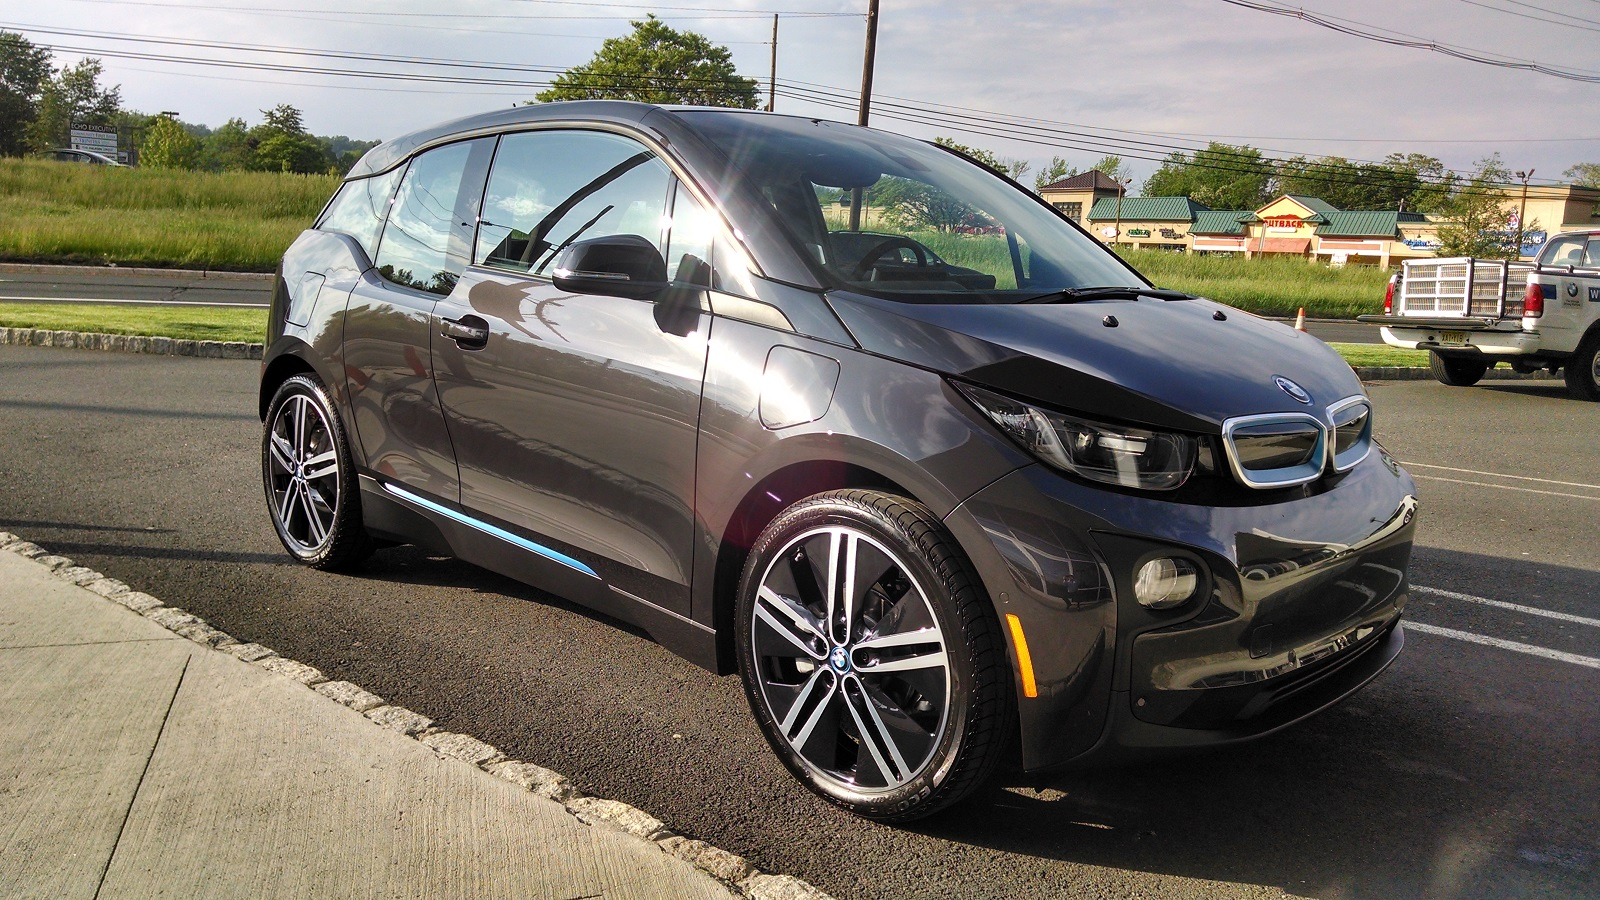 2014 Bmw I3 Is Range Extended Version Outselling Battery